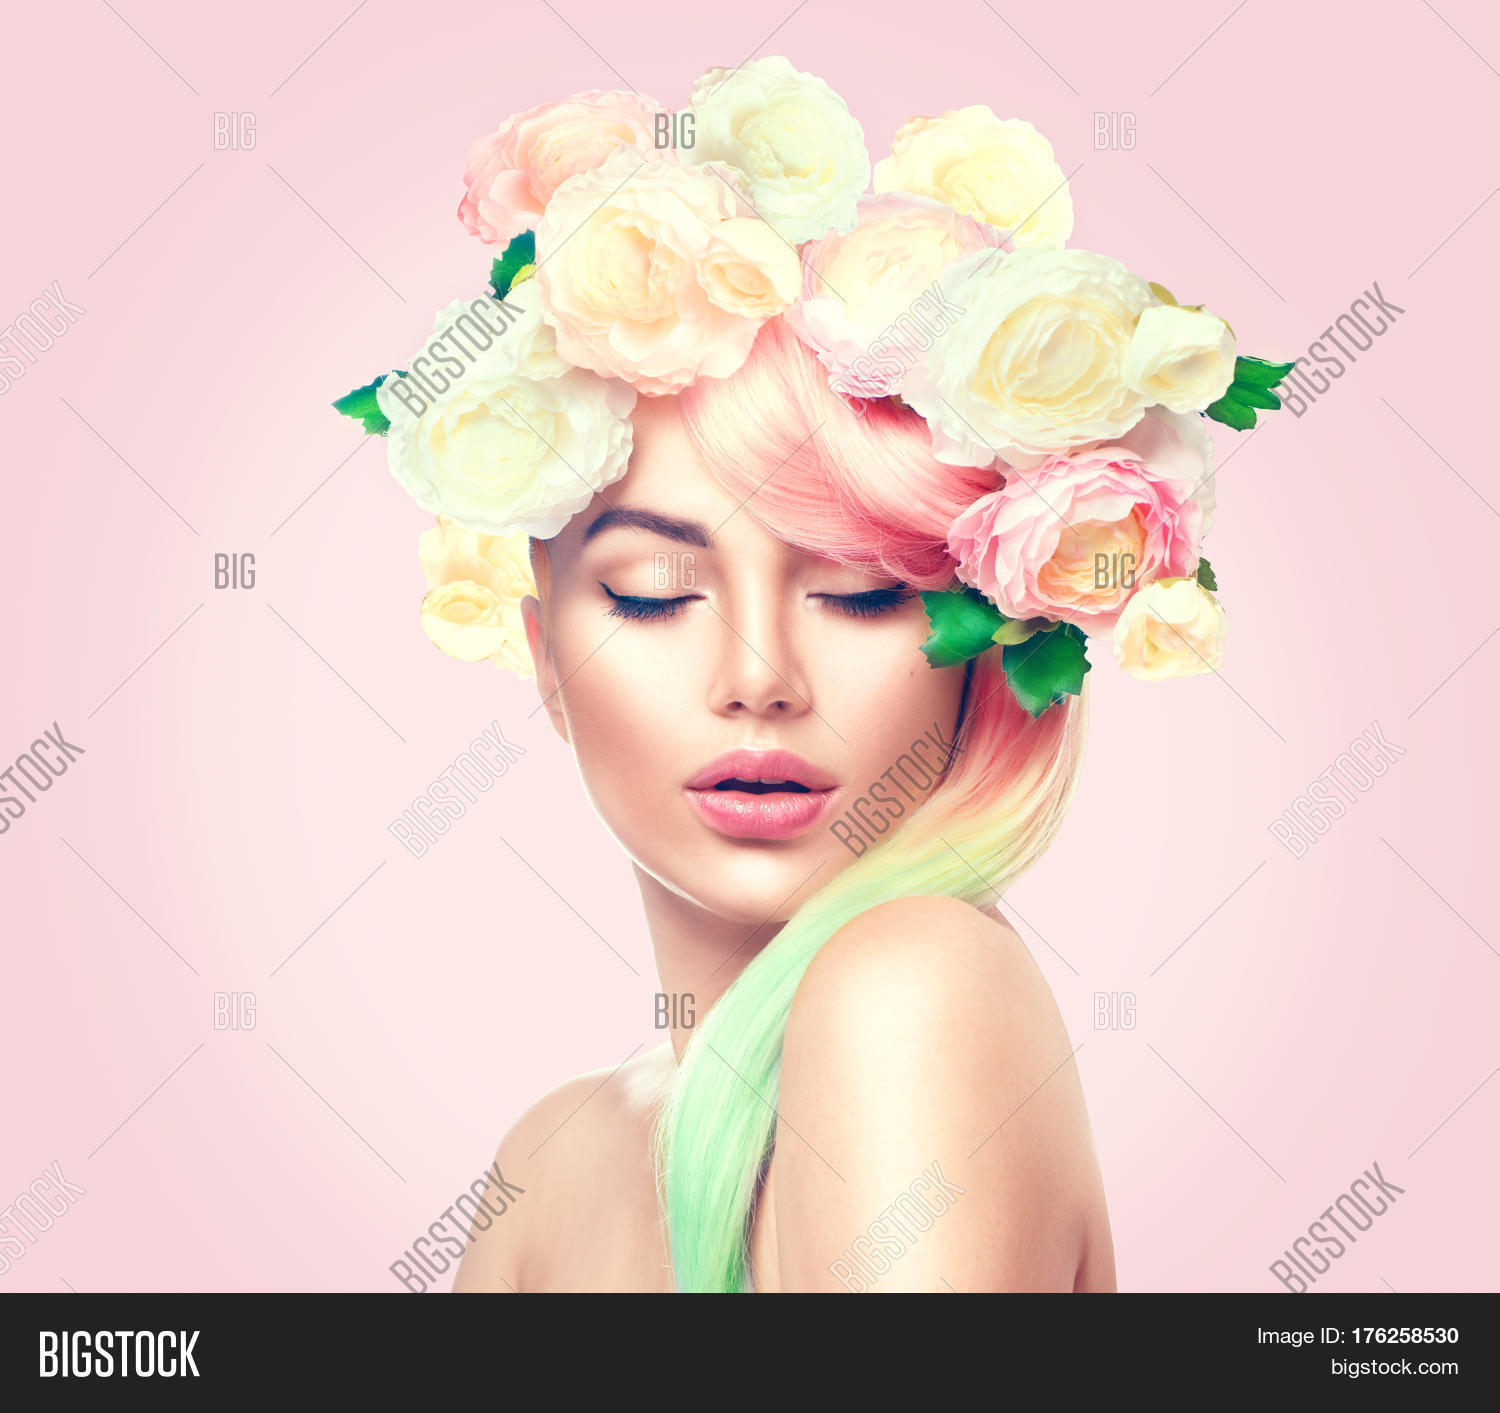 Spring woman beauty image photo free trial bigstock beauty summer model girl with colorful flowers wreath and colorful hair flowers izmirmasajfo